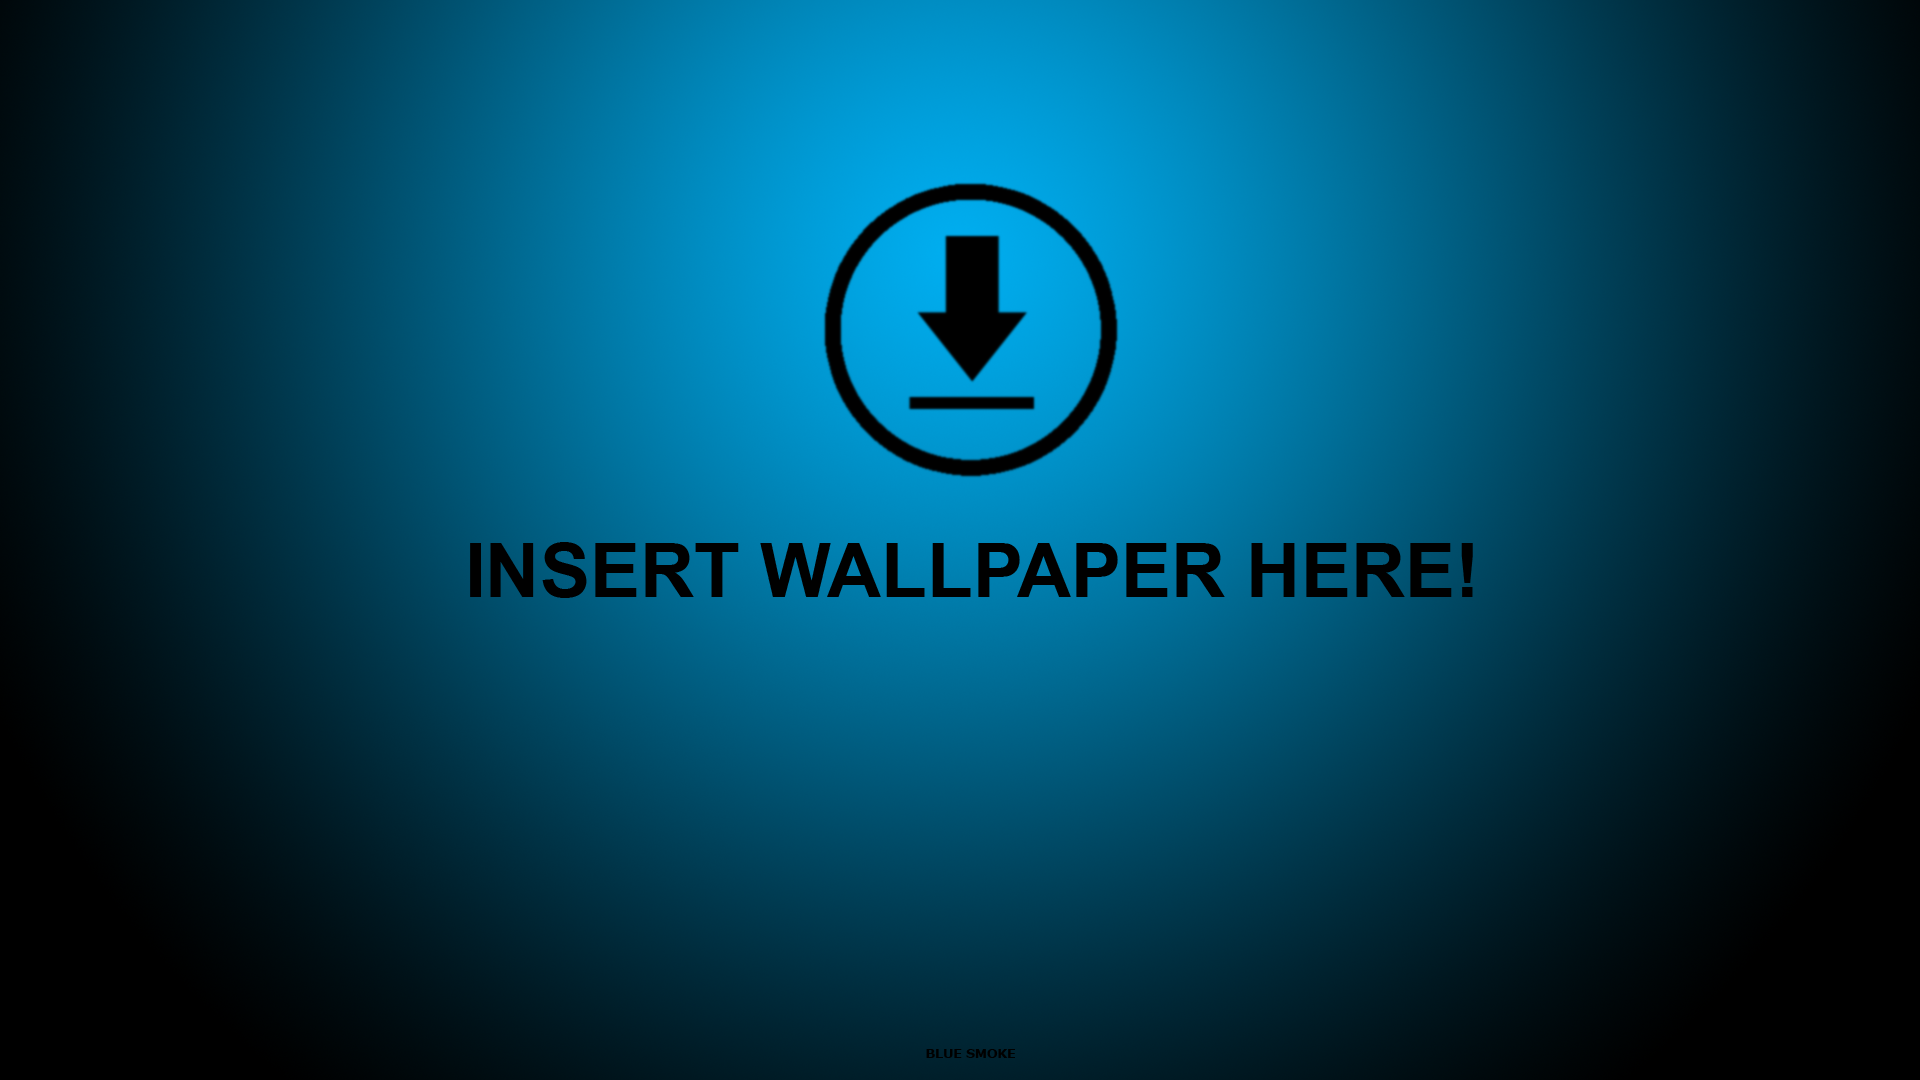 Instert Wallpaper Here By Danieldogeanu